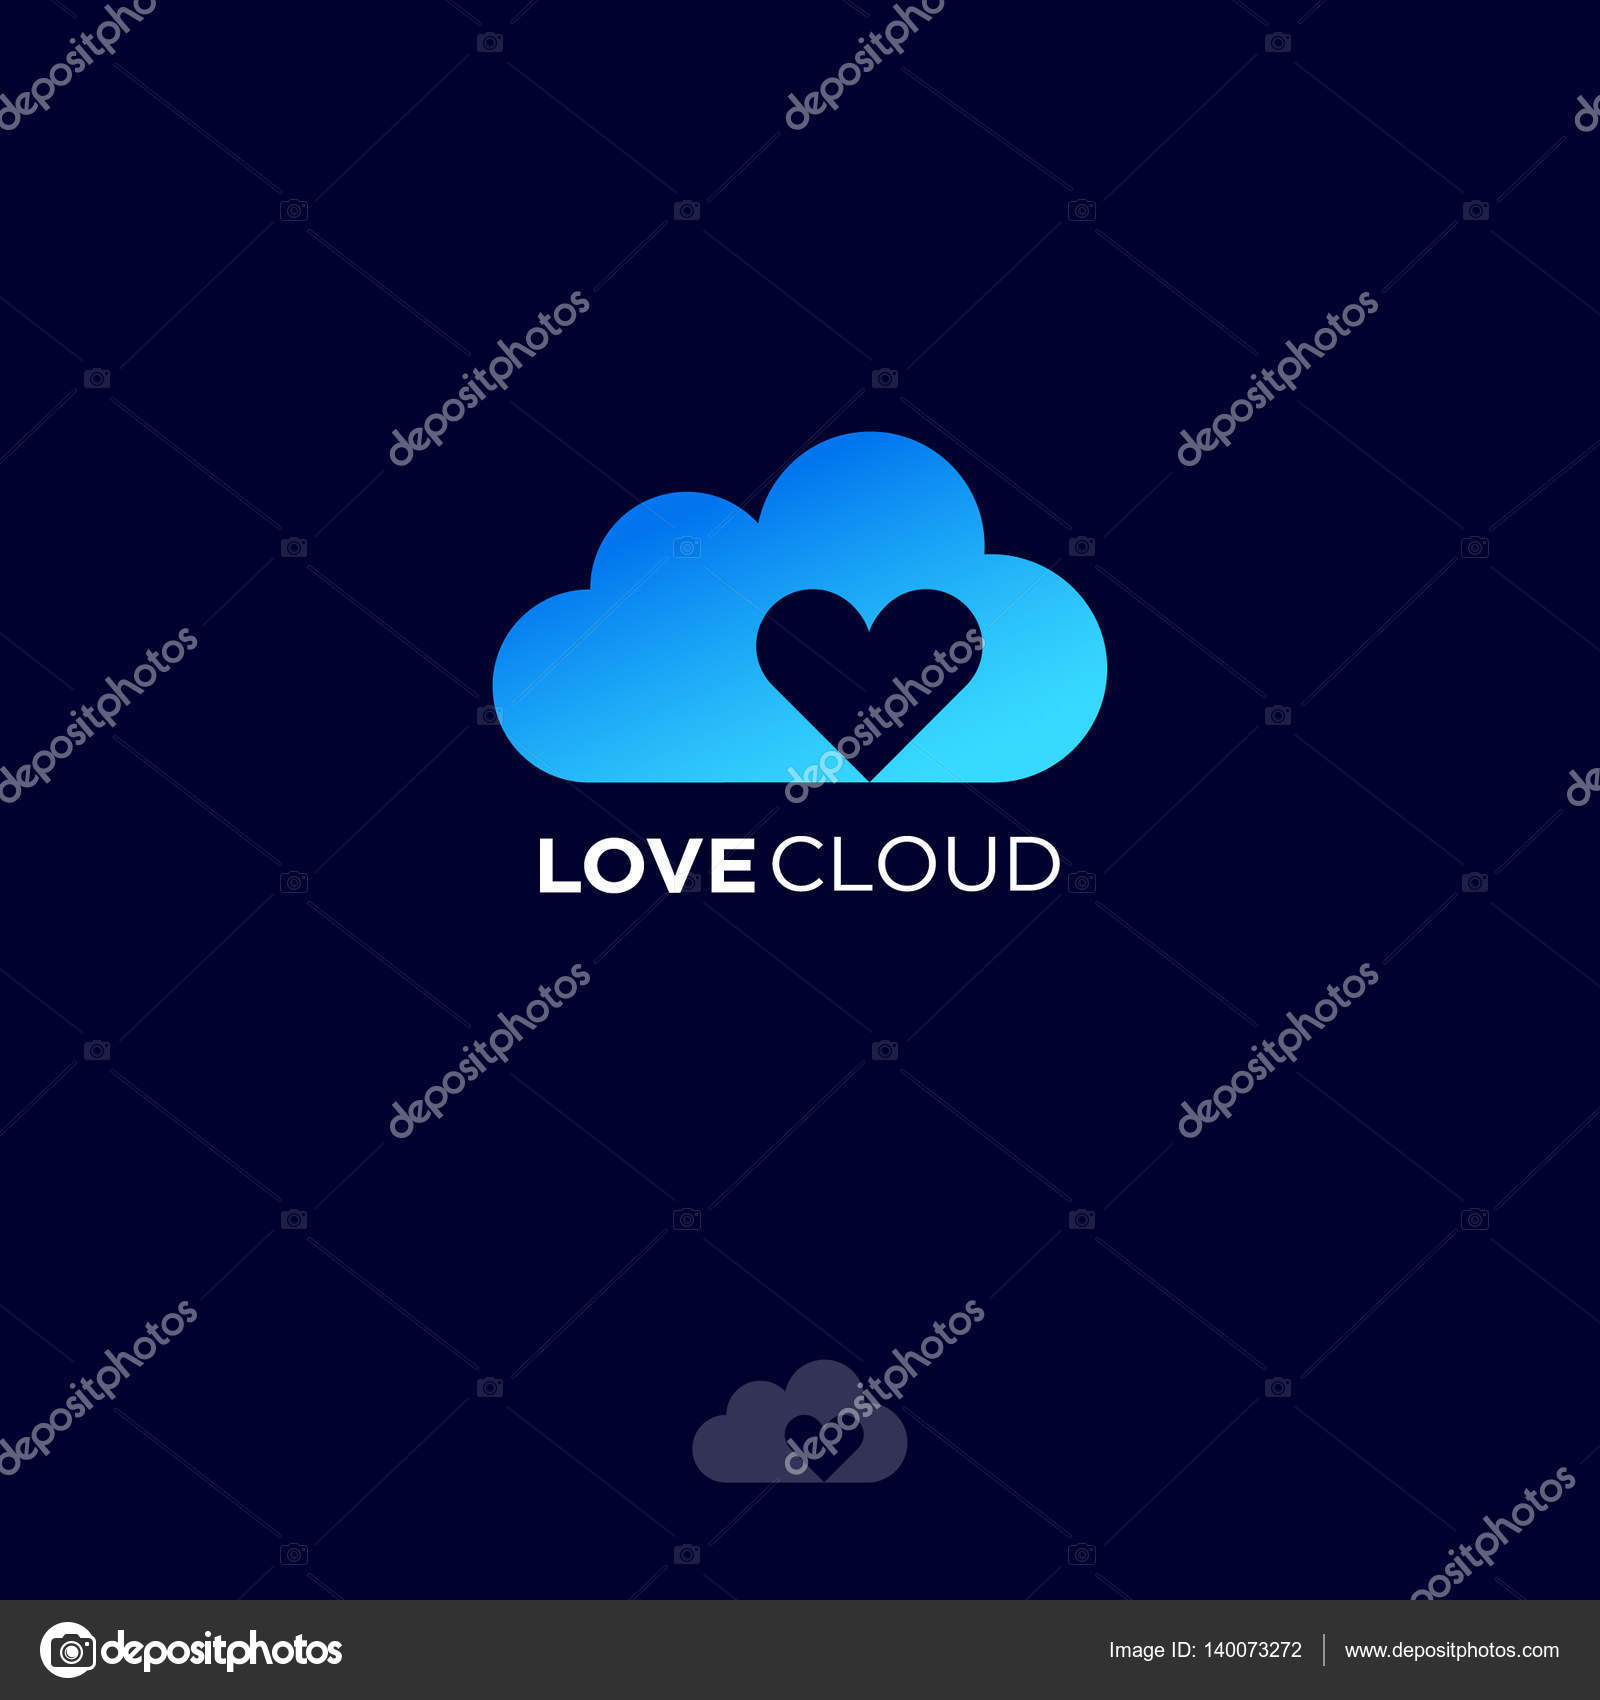 logo design for dating site